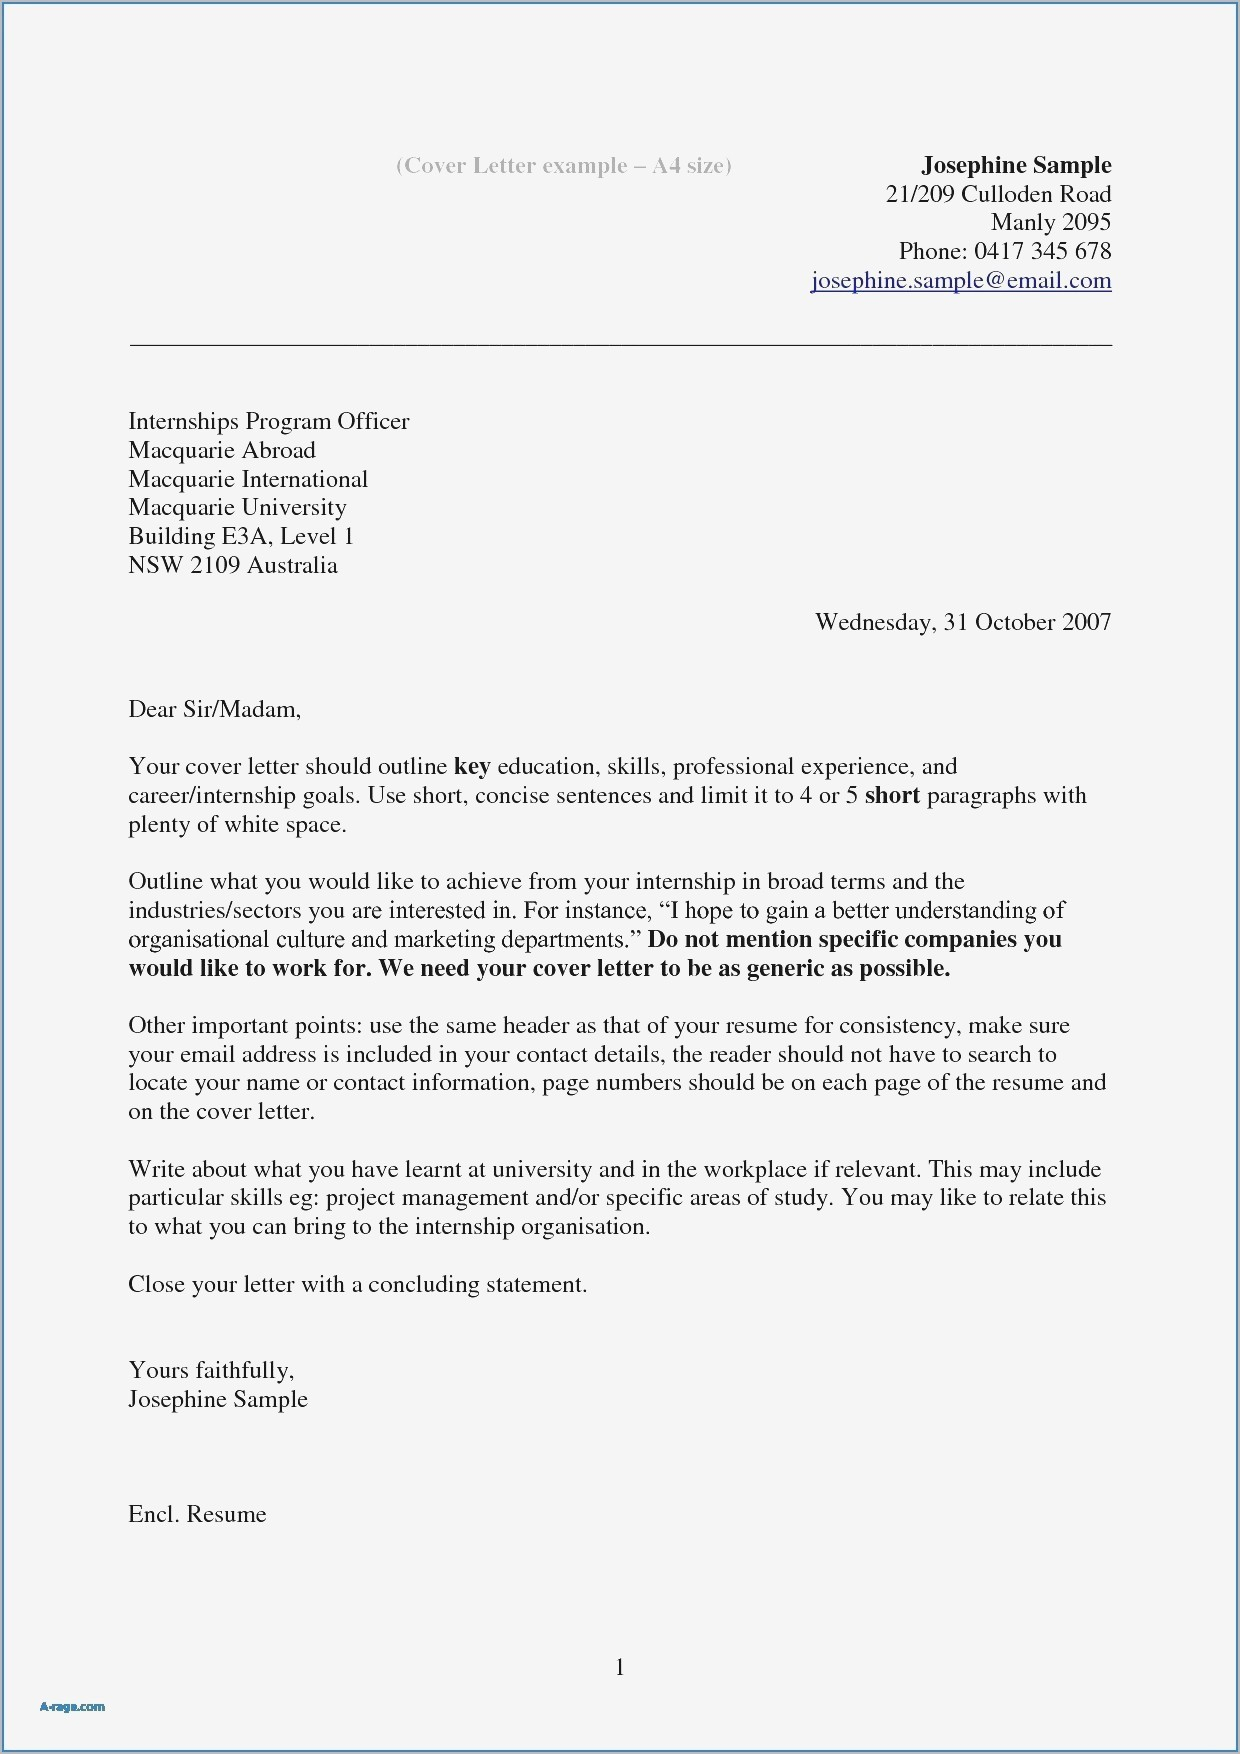 blank cover letter template example-awesome cover letter template 17-d